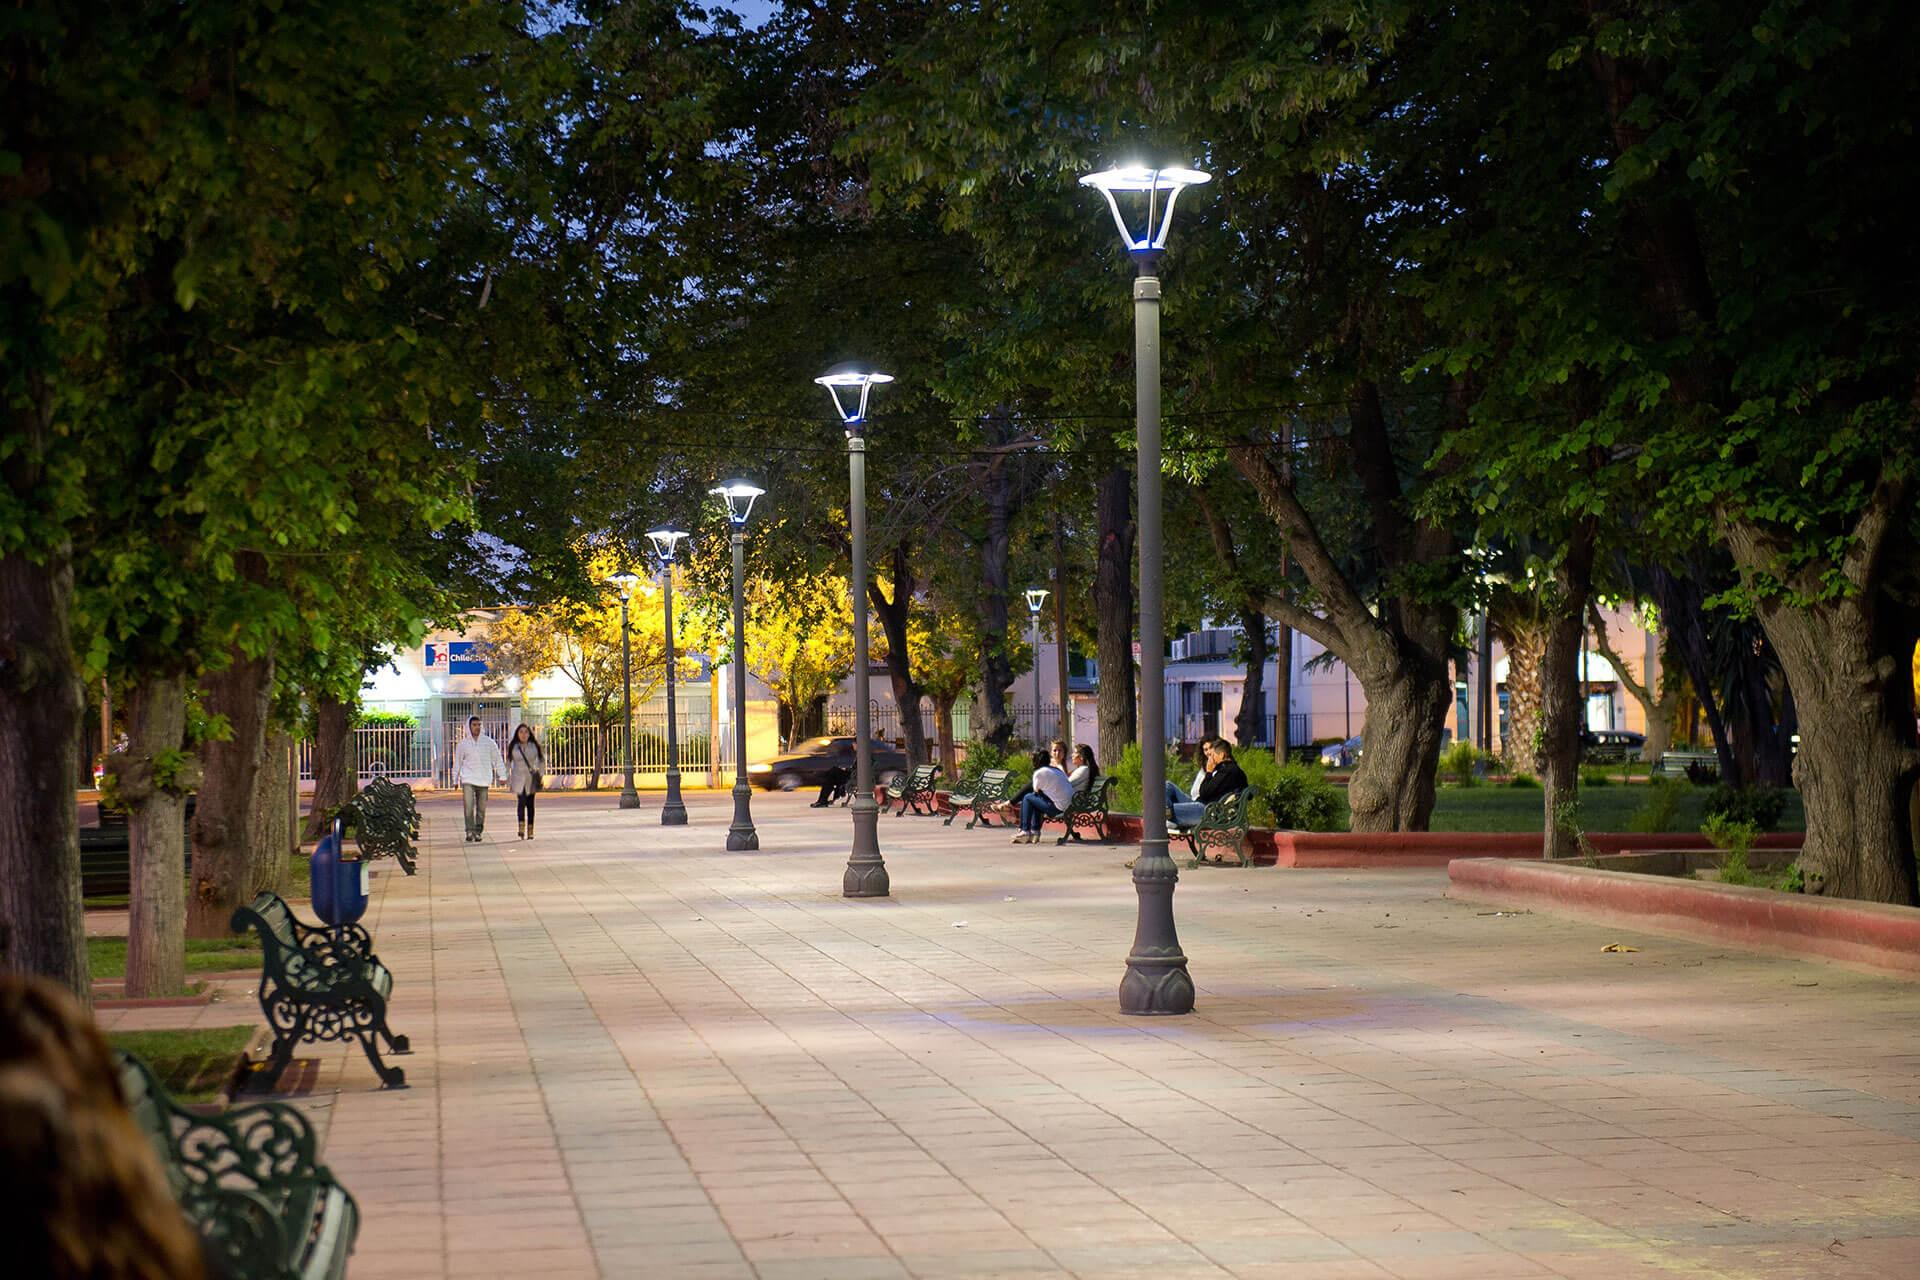 Isla LED revives this town square by creating an attractive nocturnal space